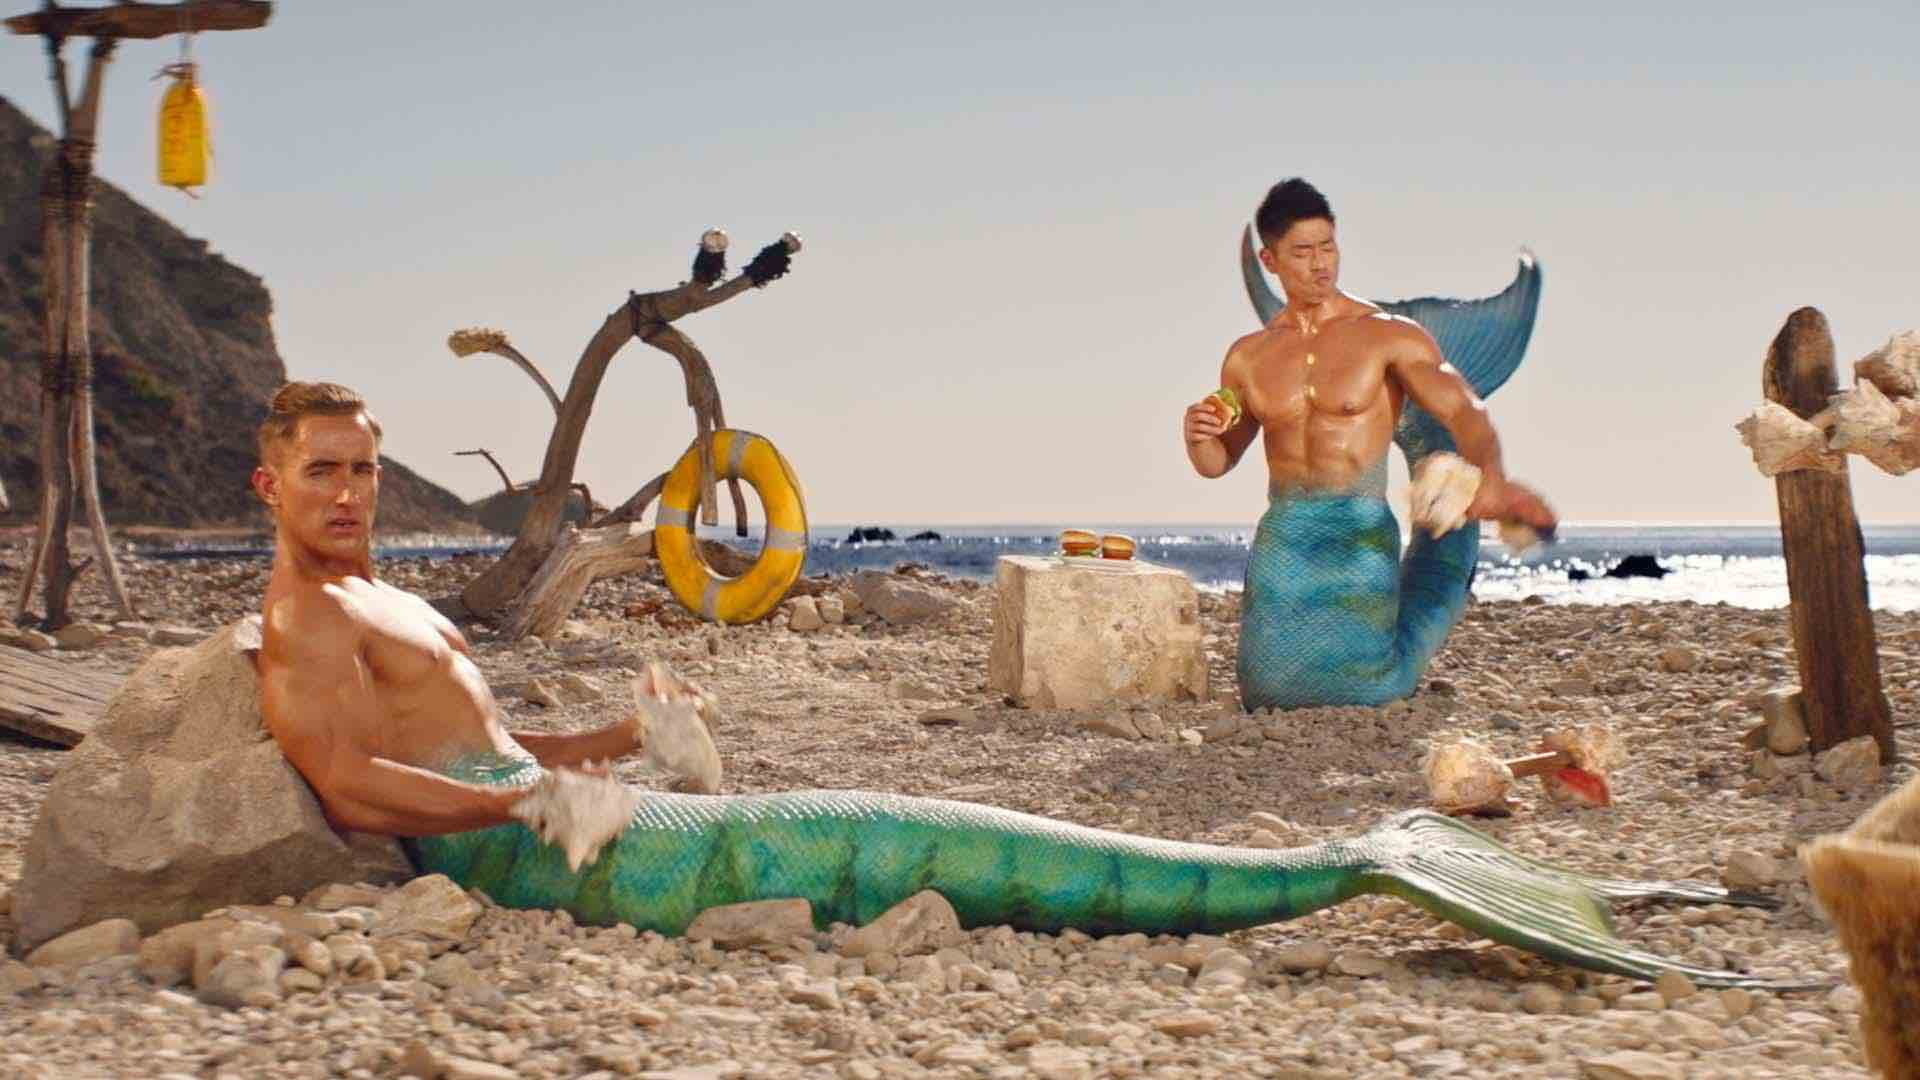 Thumbnail for a commercial for Gorton's called 'MerBros' showing buff men in mermaid costumes.